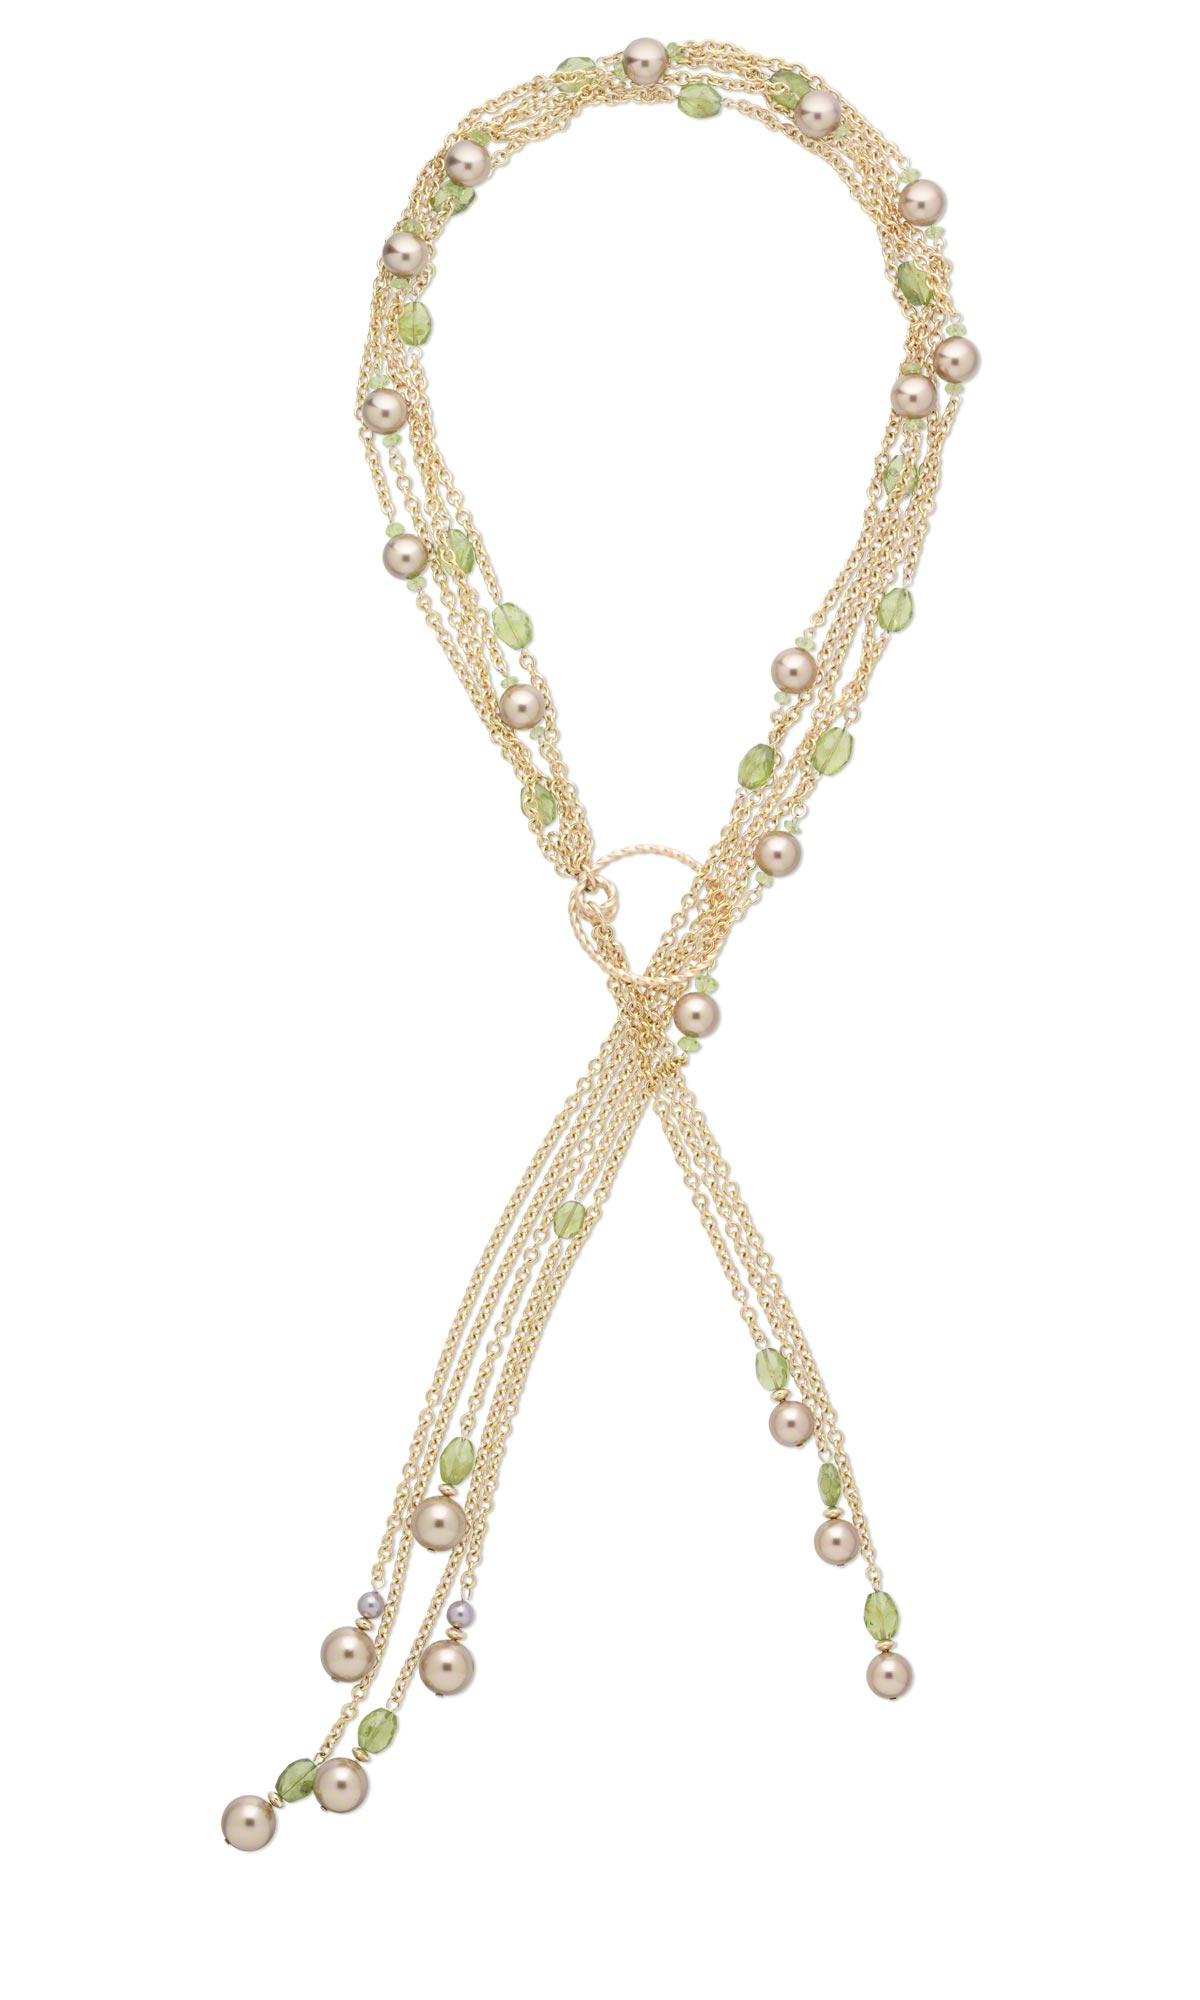 Jewelry Design Multi Strand Lariat Style Necklace With